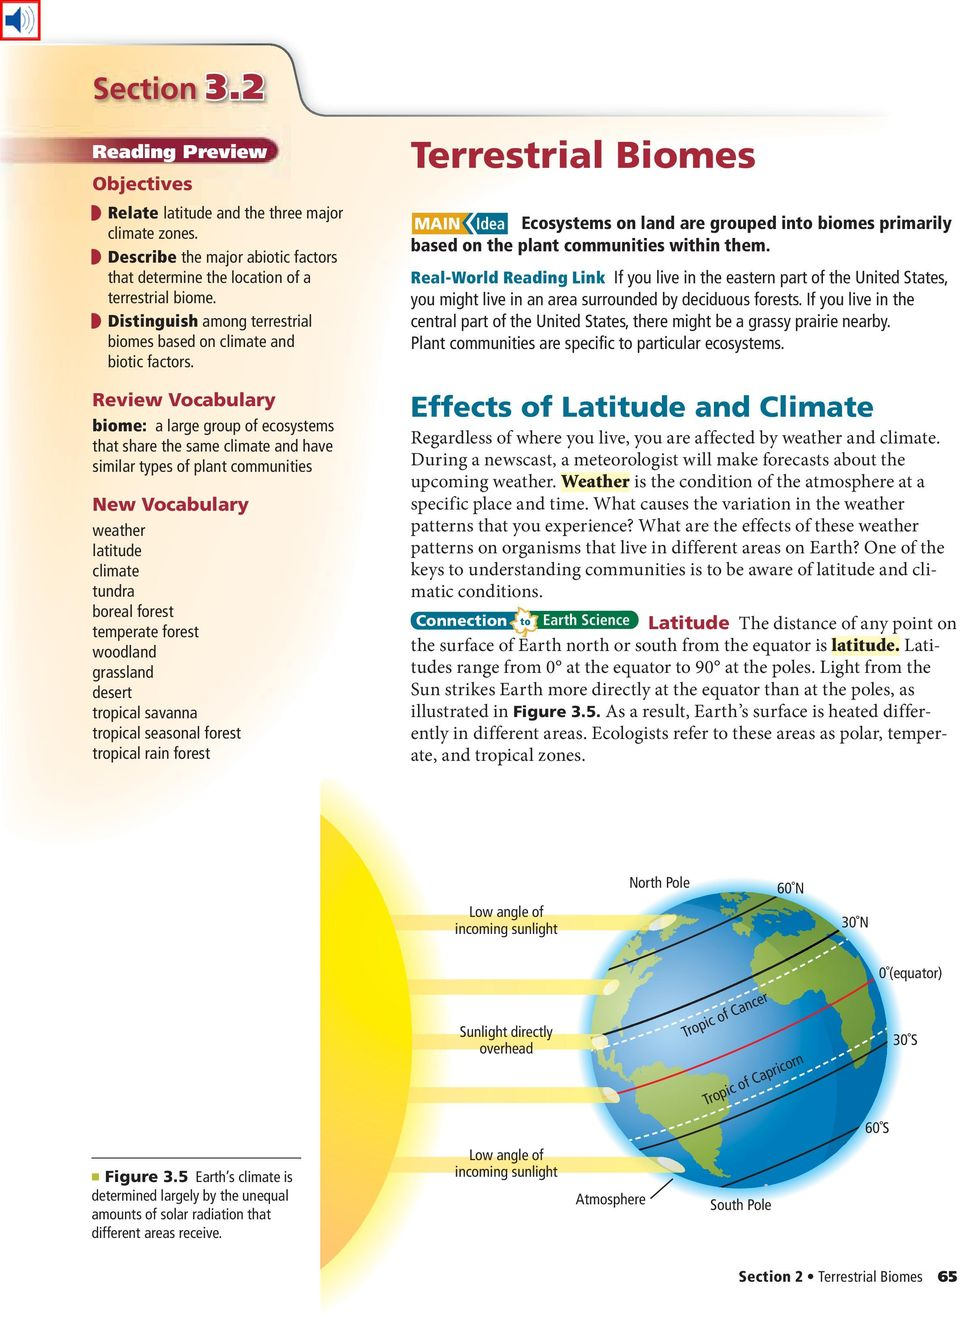 Review Vocabulary biome: a large group of ecosystems that share the same climate and have similar types of plant communities New Vocabulary weather latitude climate tundra boreal forest temperate